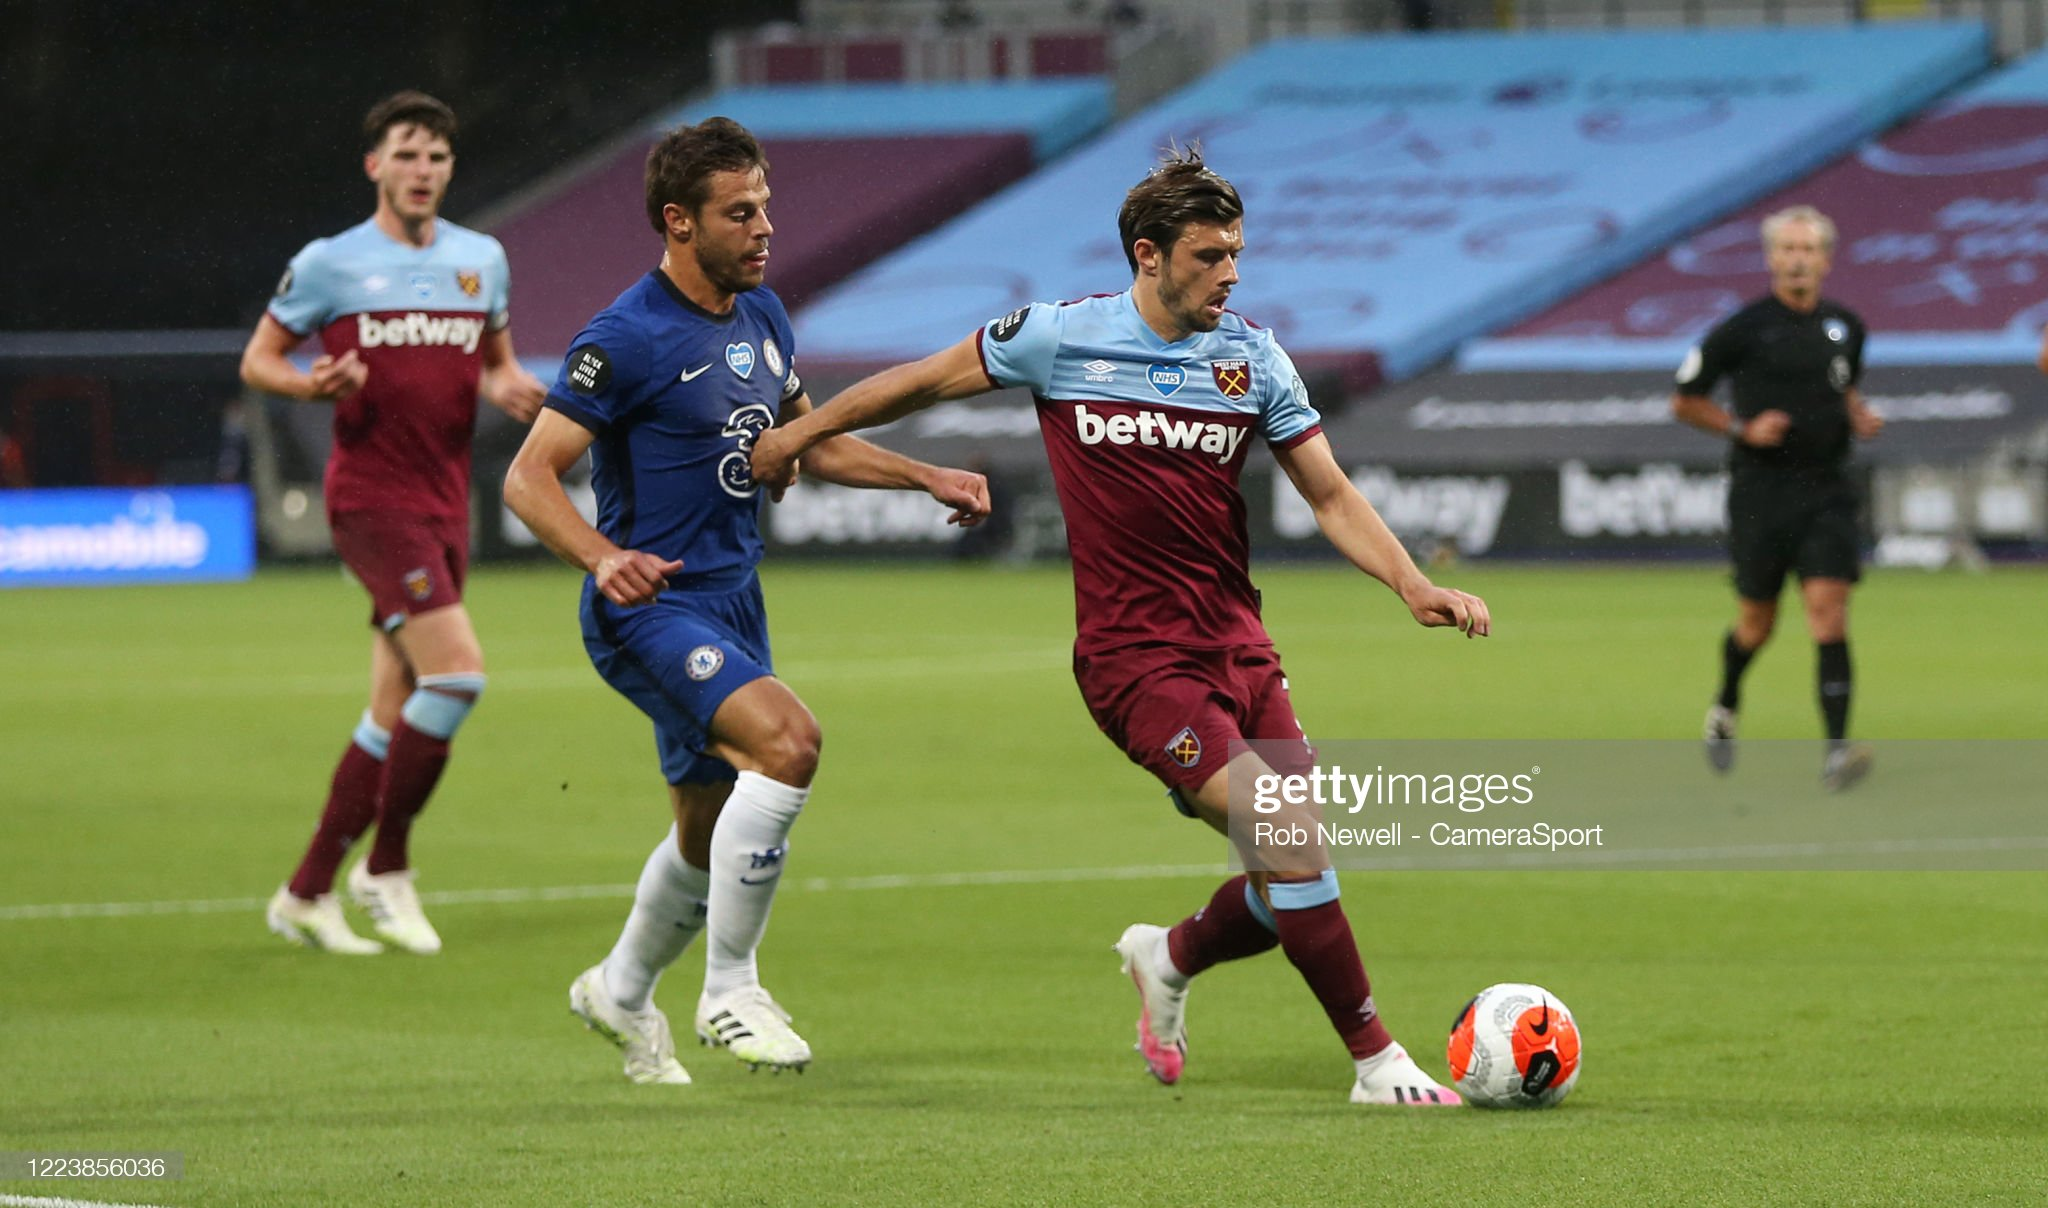 Chelsea vs West Ham Preview, prediction and odds